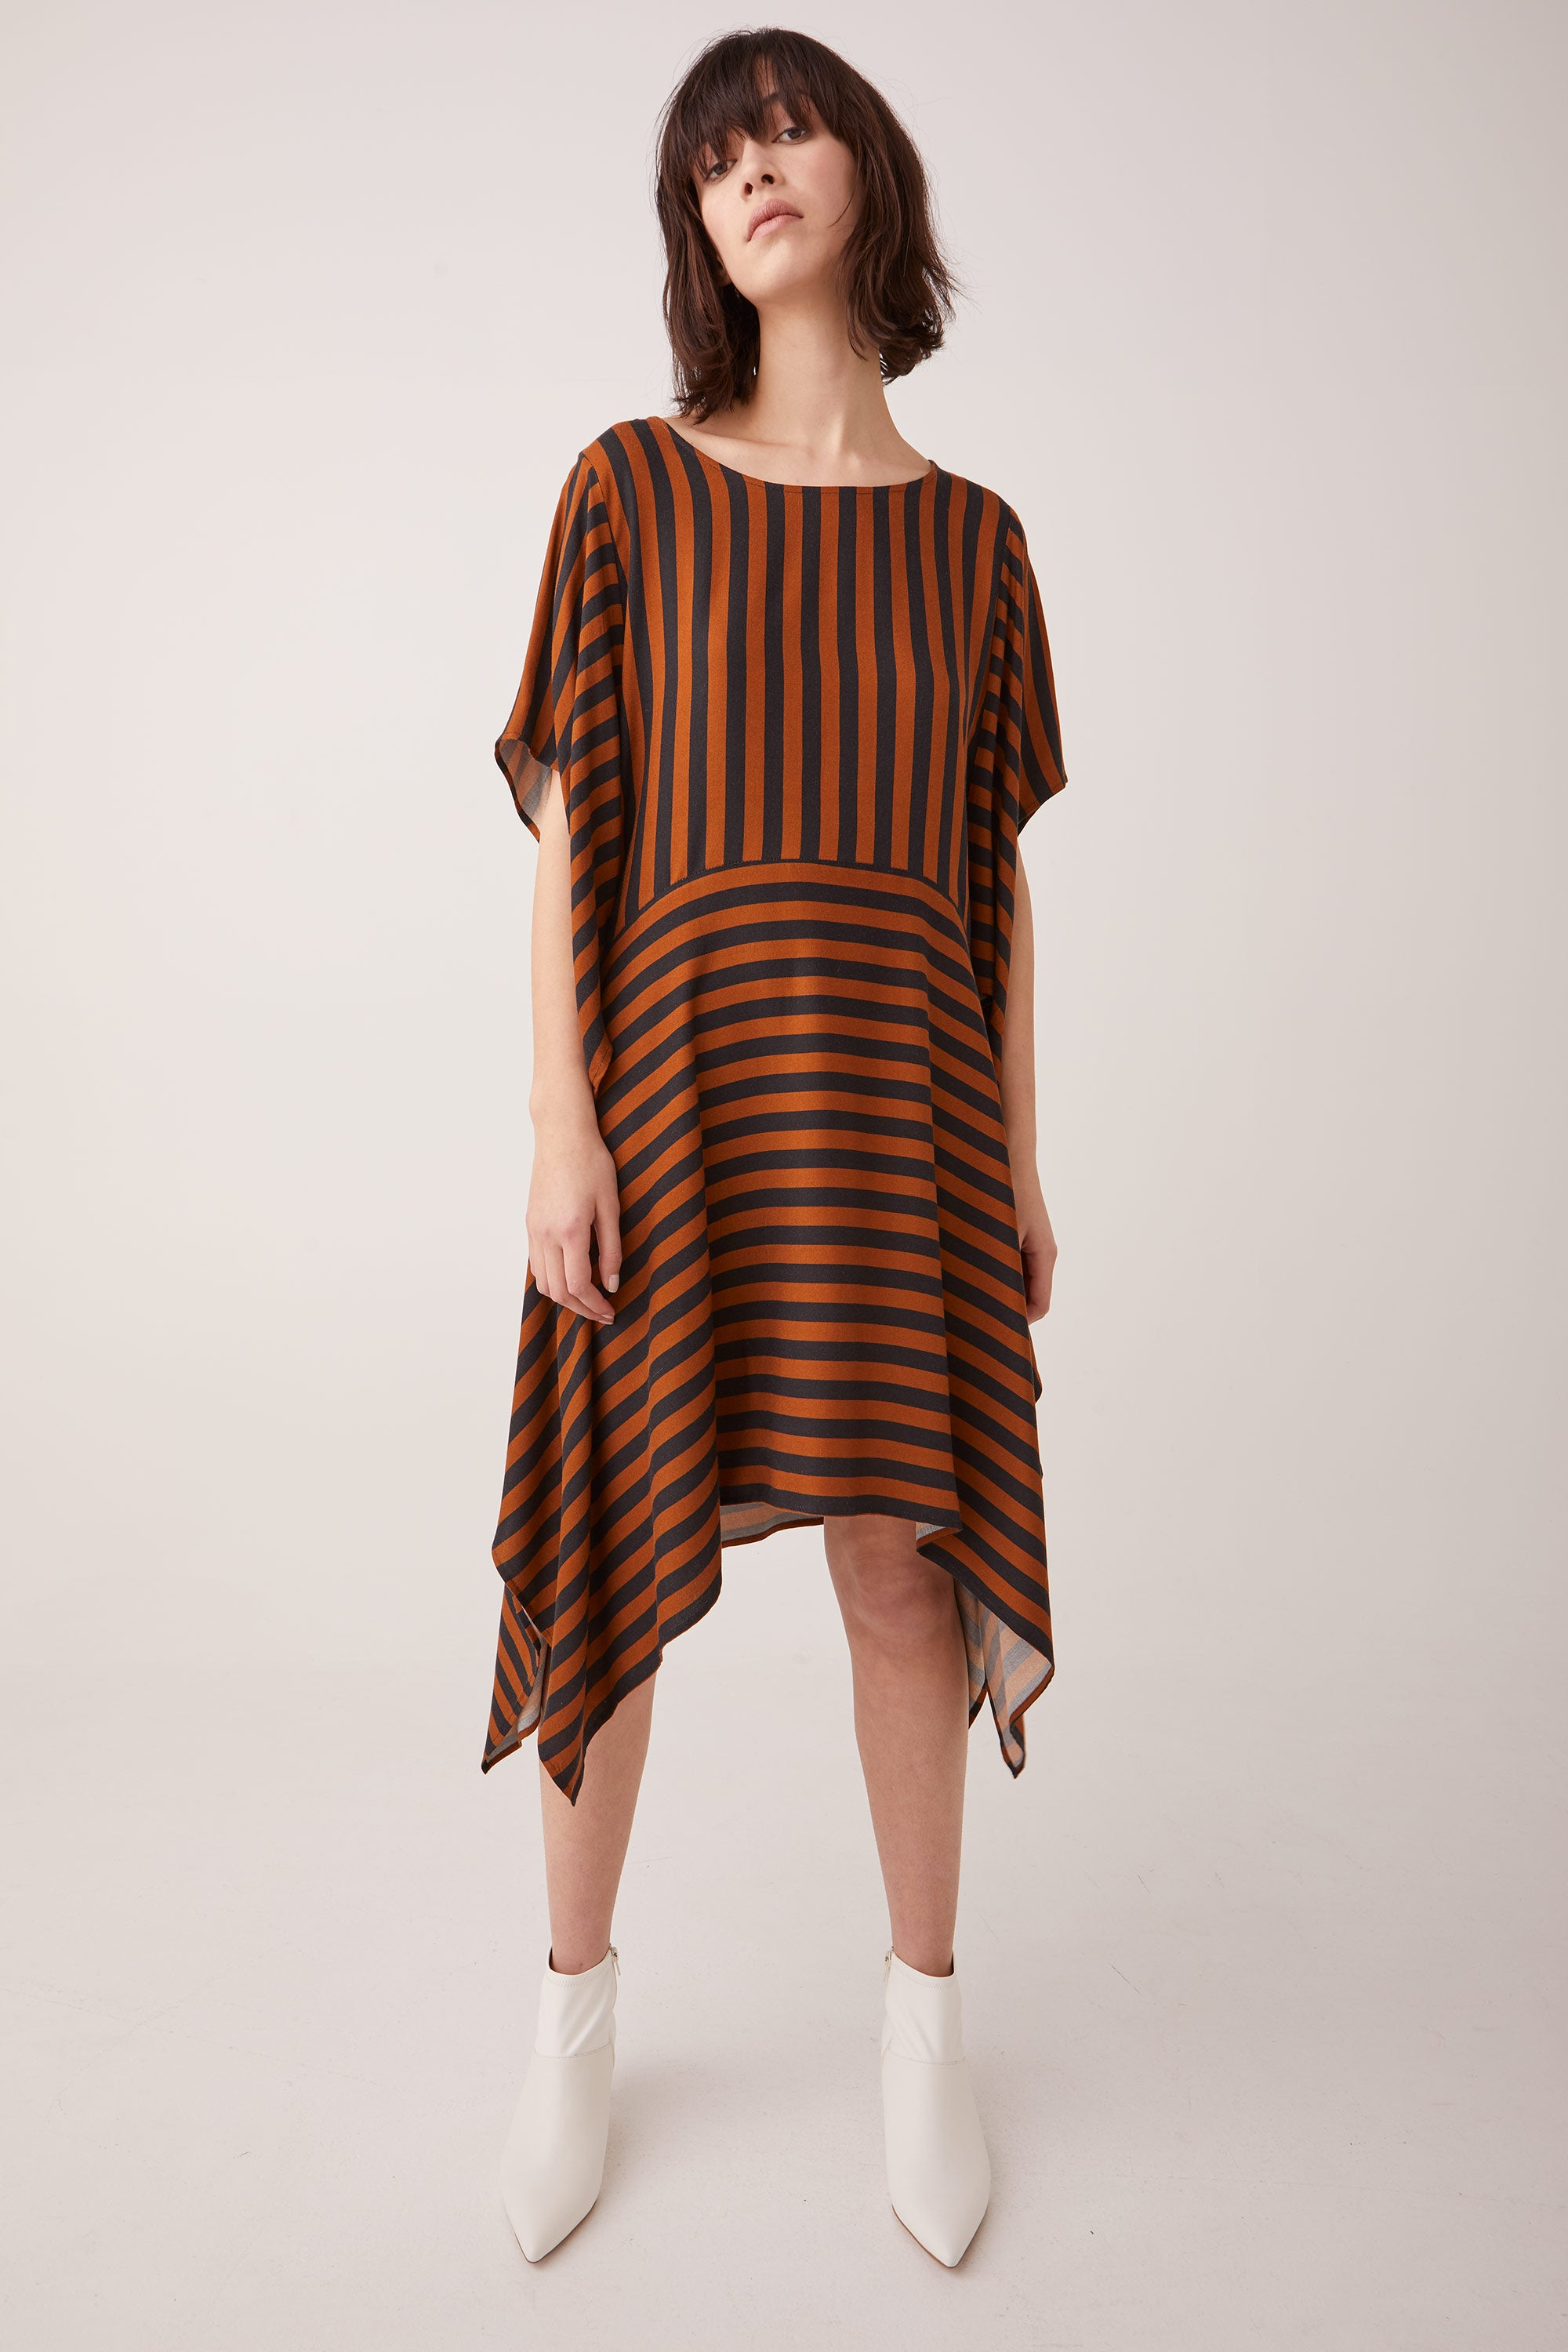 Ricochet NZ Fashion Designer Clothing Boutique AW19 Junko Dress Stripe Made in NZ